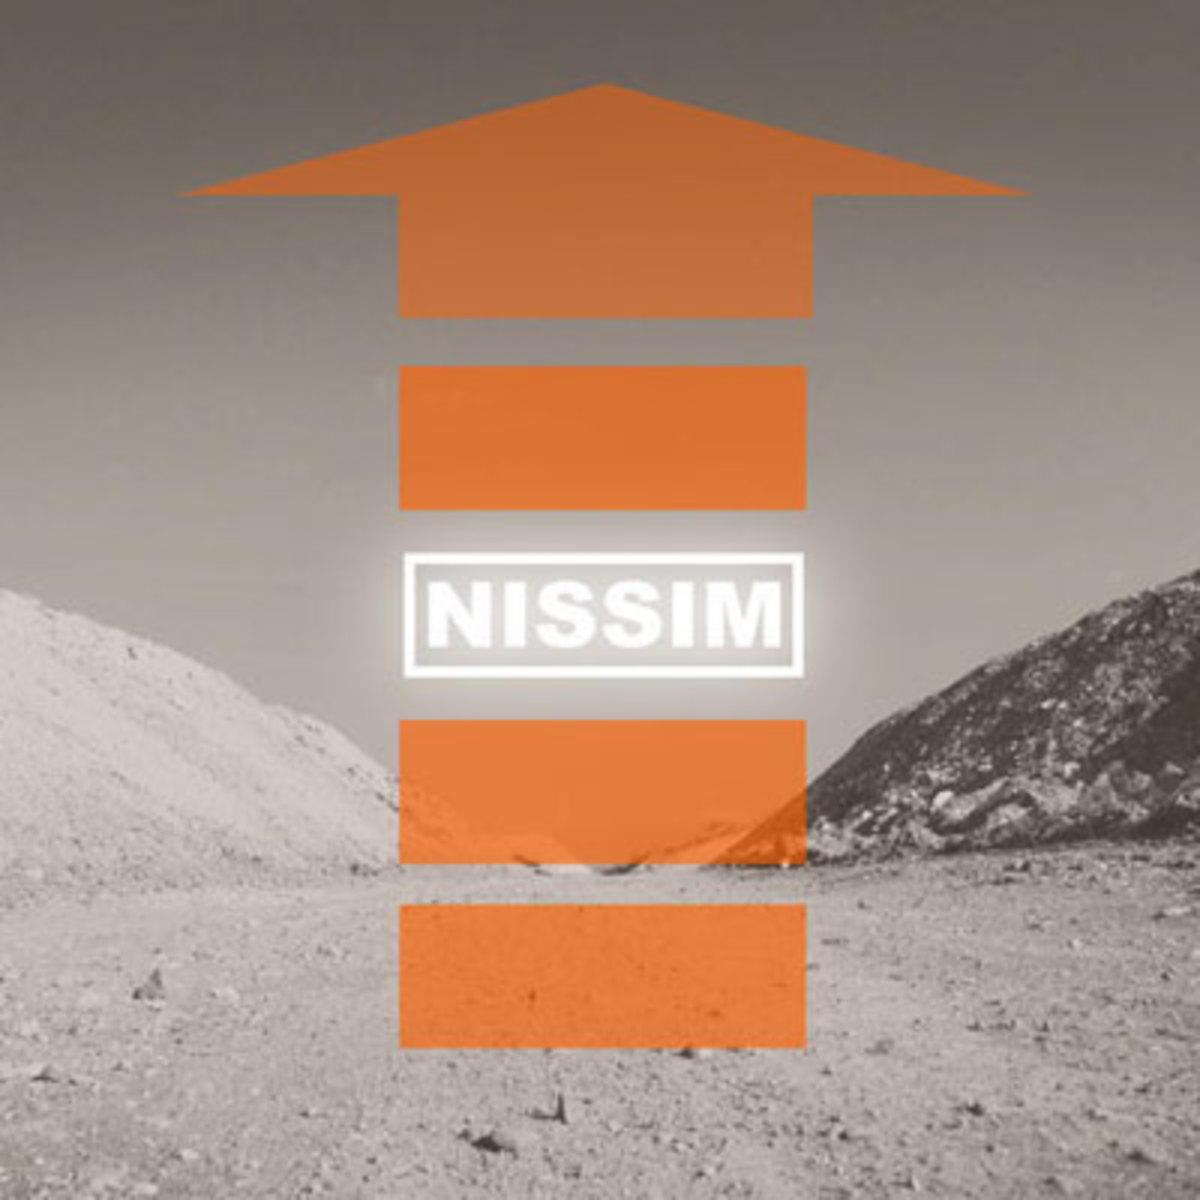 nissim-revered.jpg